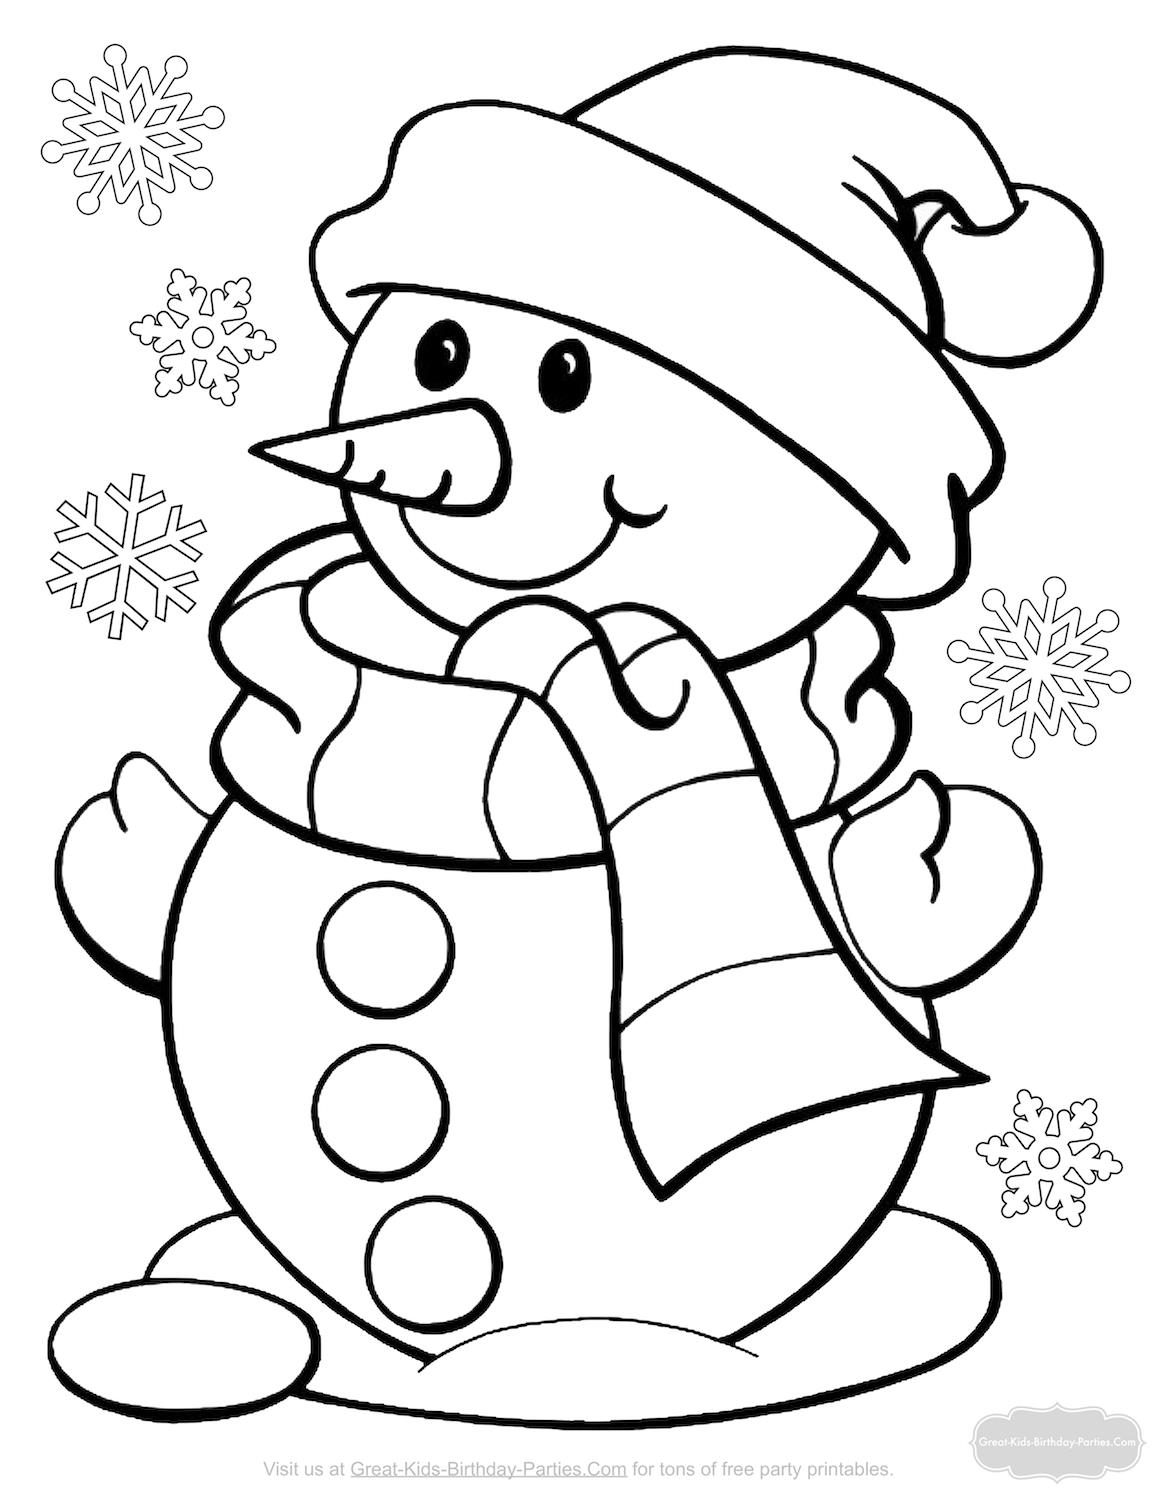 great kids birthday parties ; snowman-coloring-pages-2